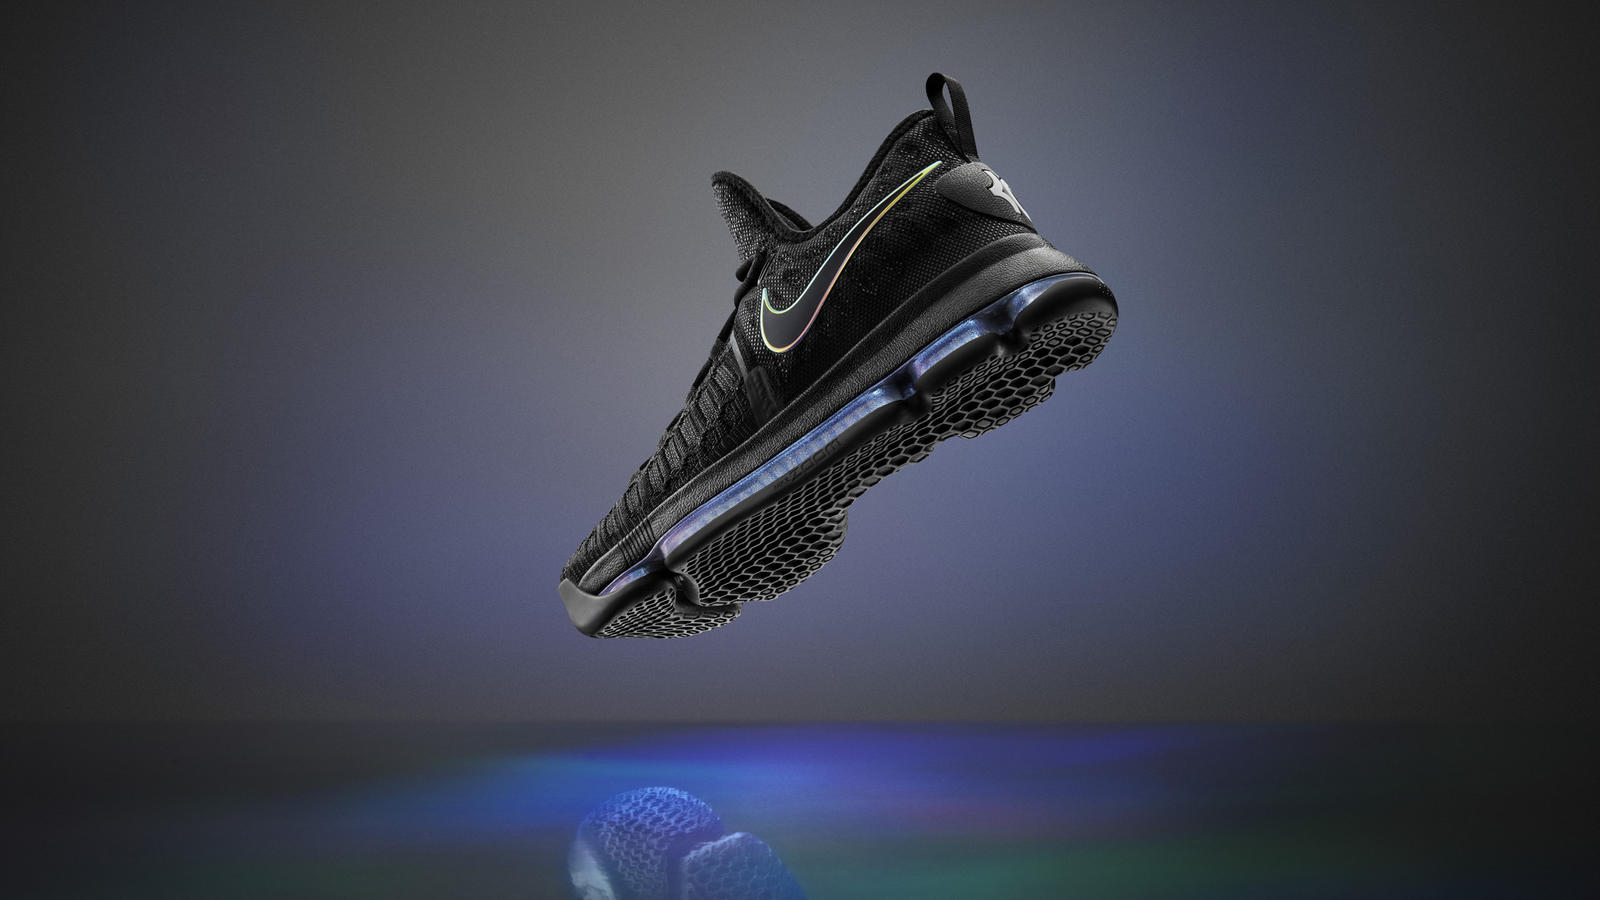 Air_zoom_kd_9_flyknit_hd_1600